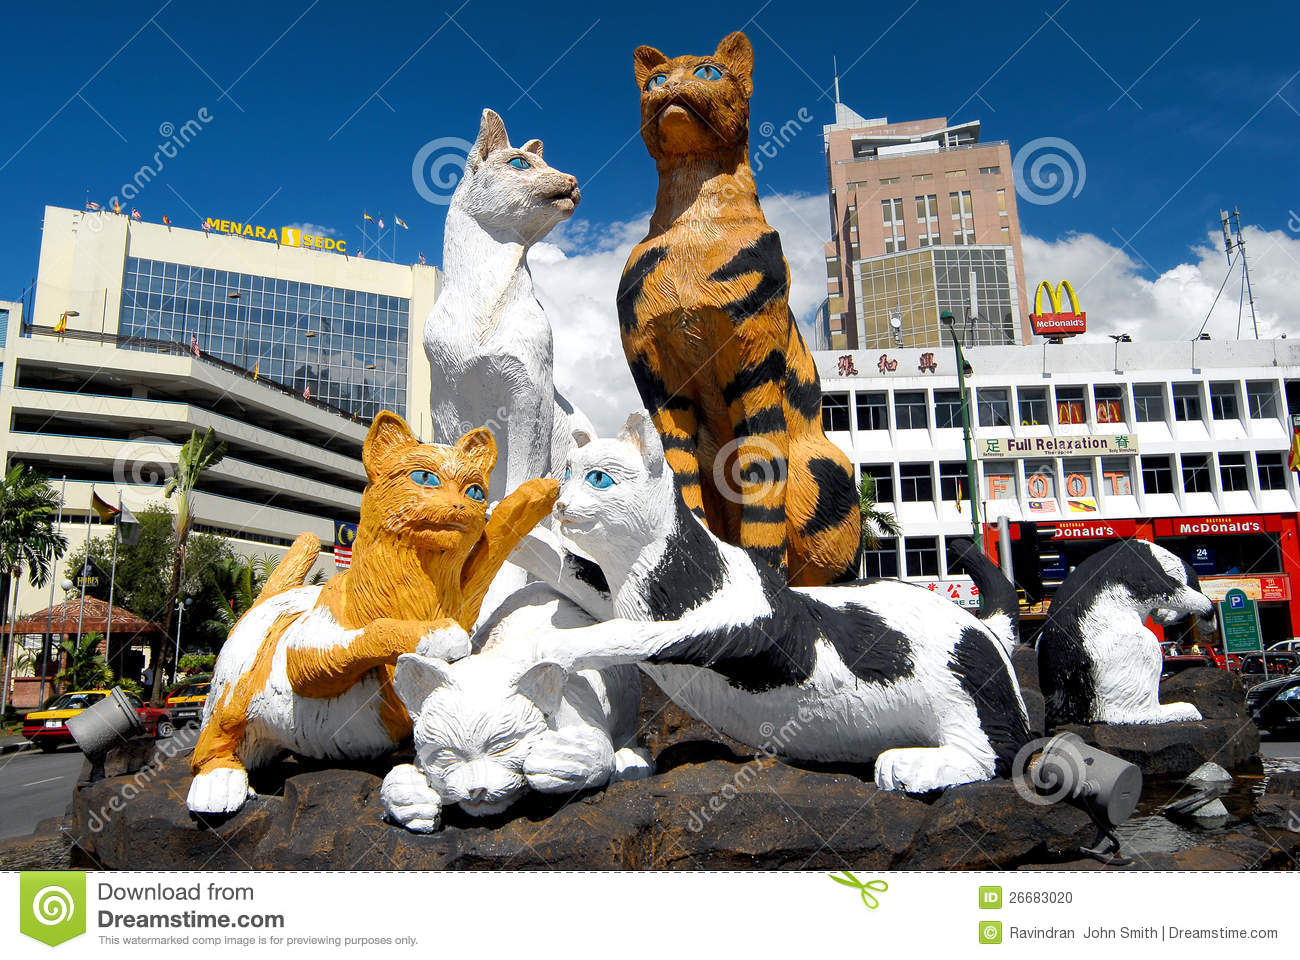 cat statues dreaming city